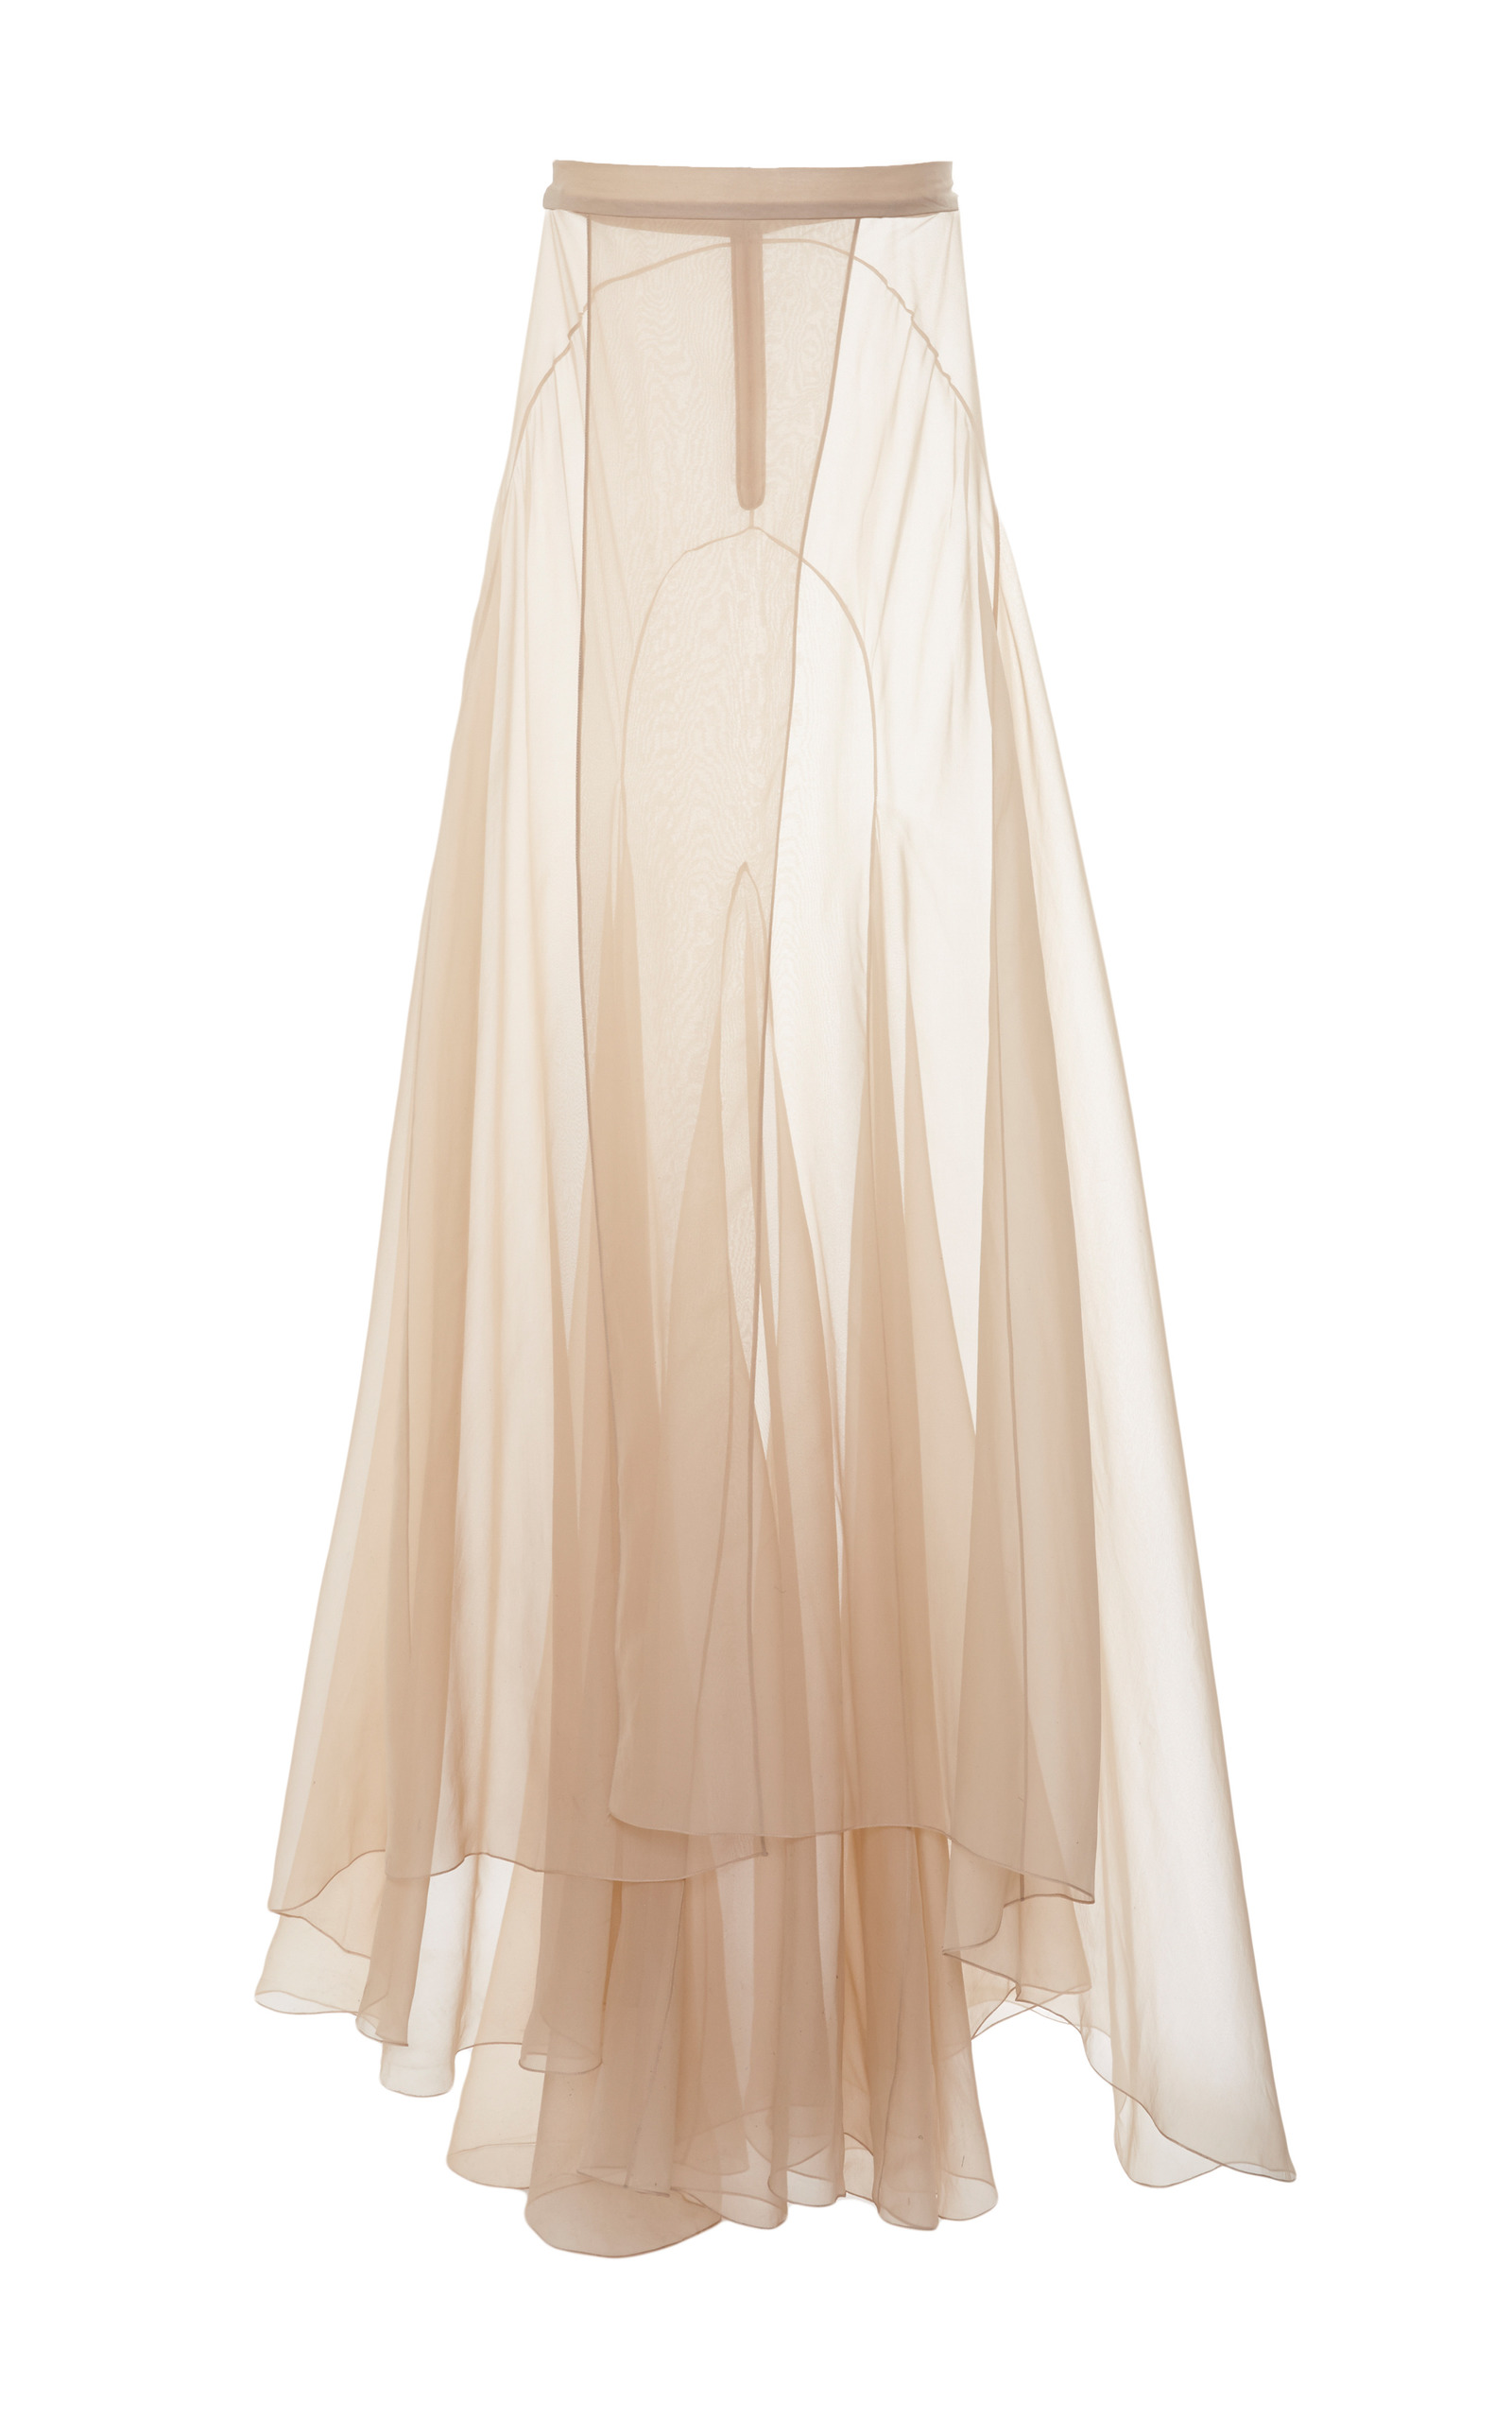 Vionnet Nude Organza Evening Skirt By Vionnet  Moda Operandi-8815